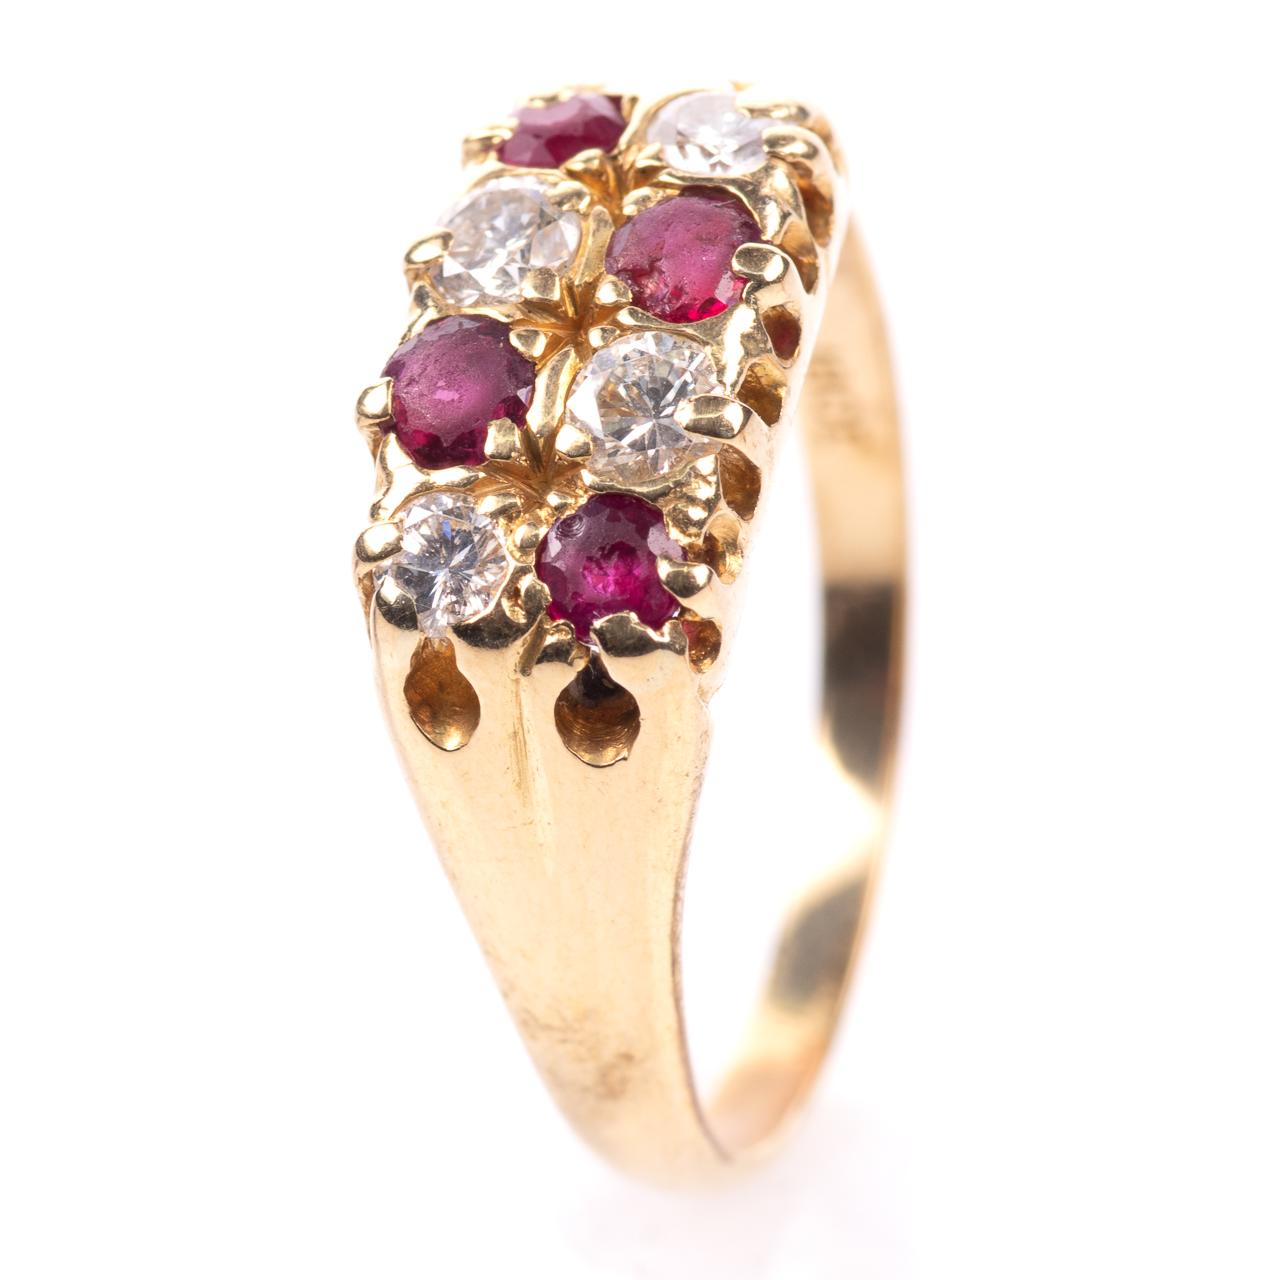 18ct Gold 0.60ct Ruby & 0.50ct Diamond Ring - Image 2 of 7